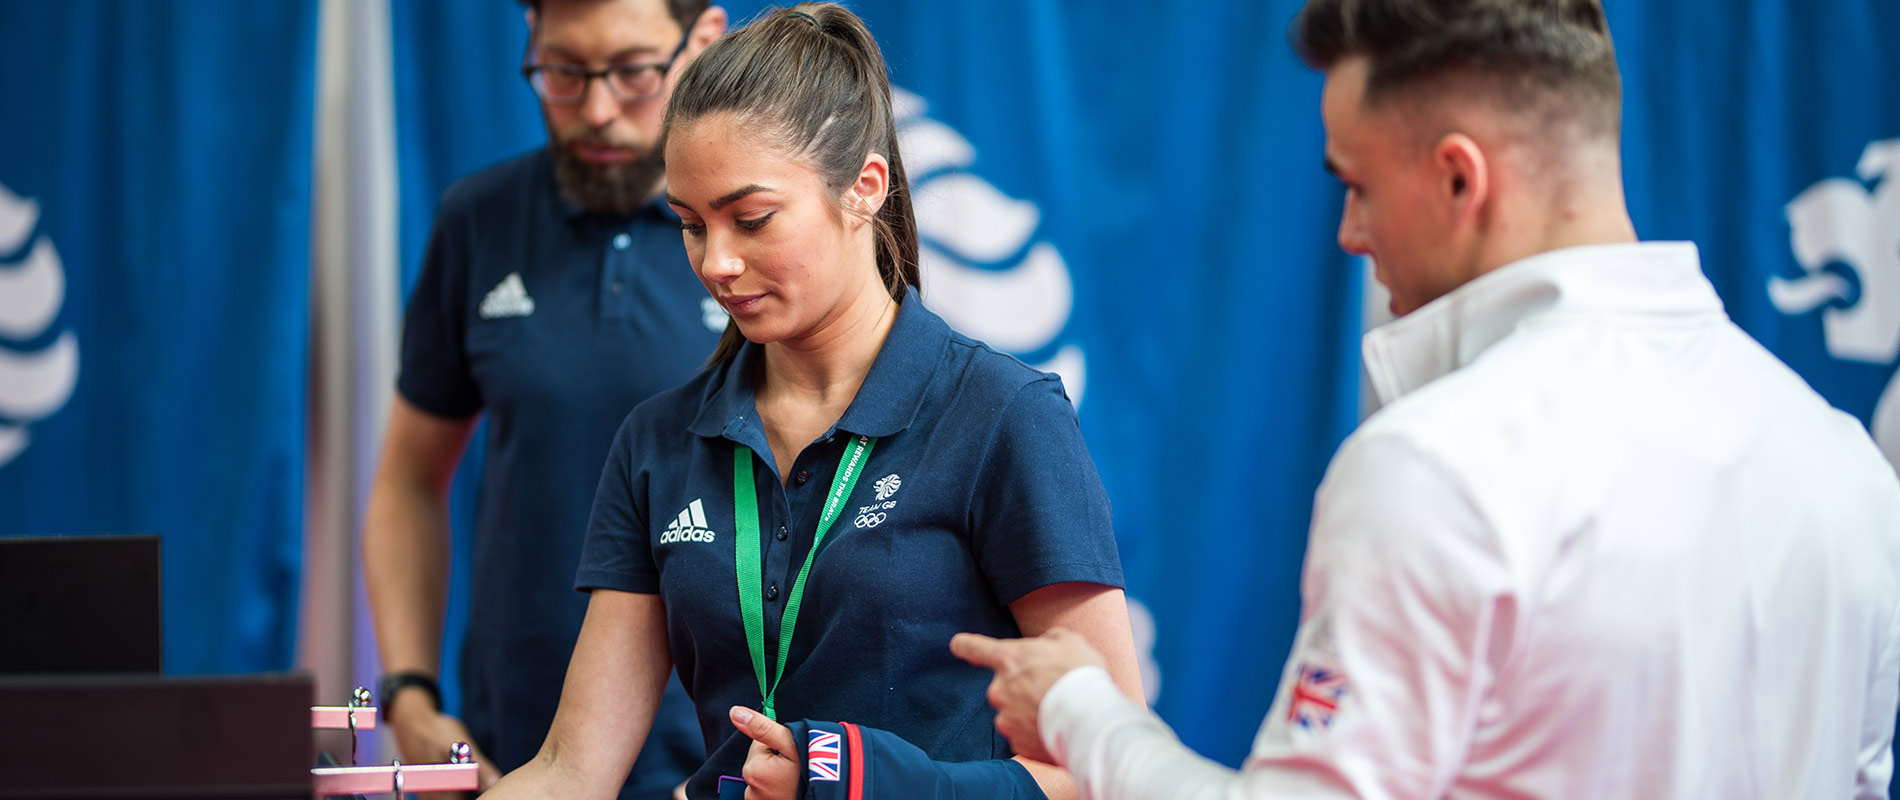 University of Hull students help Team GB athletes get kitted out